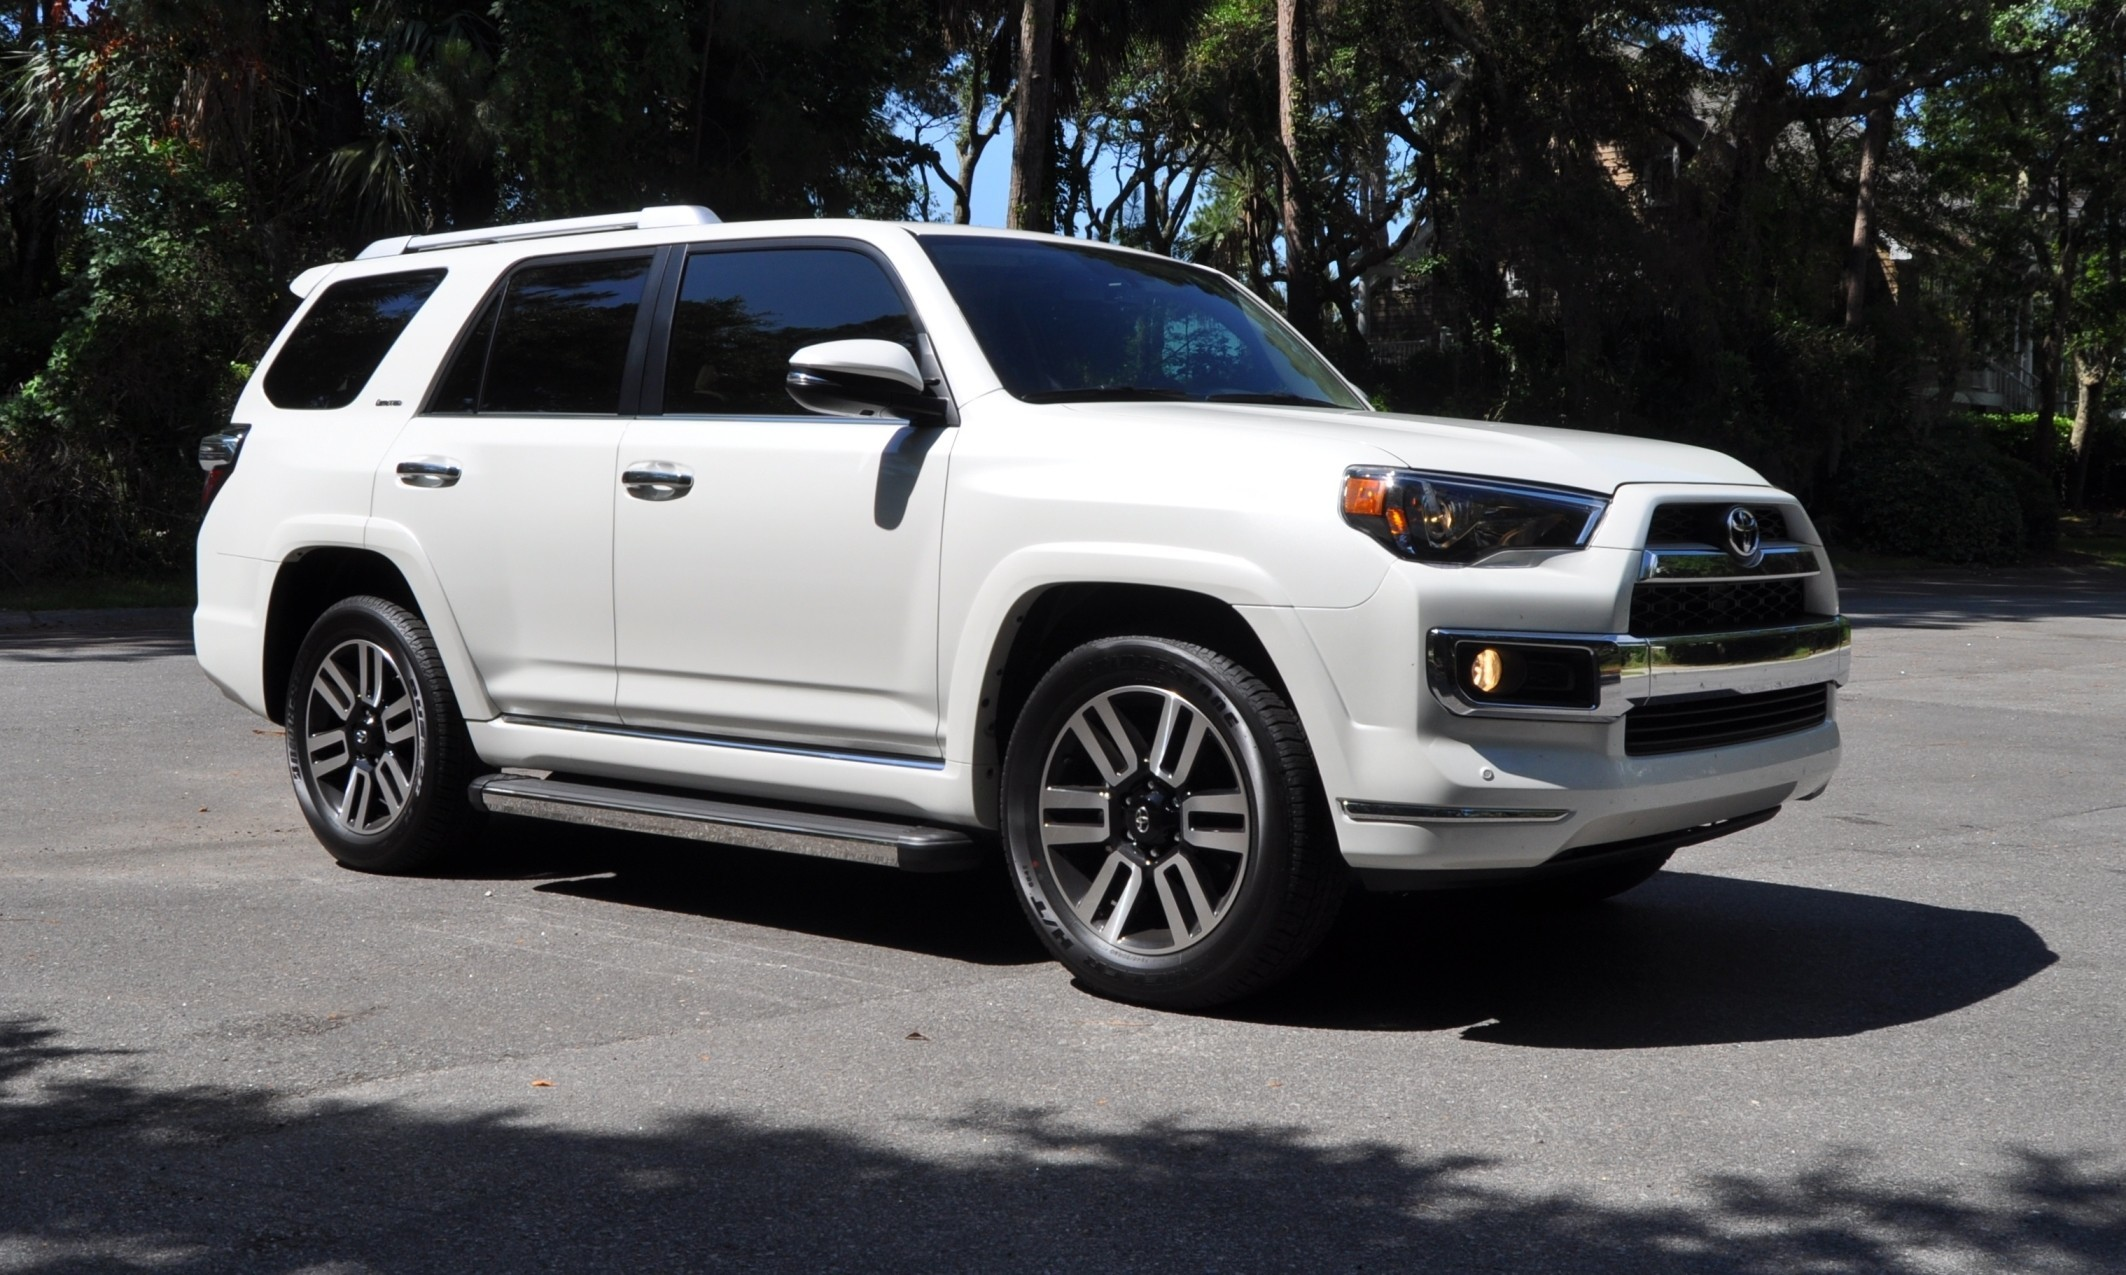 4Runner Trail Premium >> Road Test Review - 2014 Toyota 4Runner Limited 2WD Is Low and Sexy